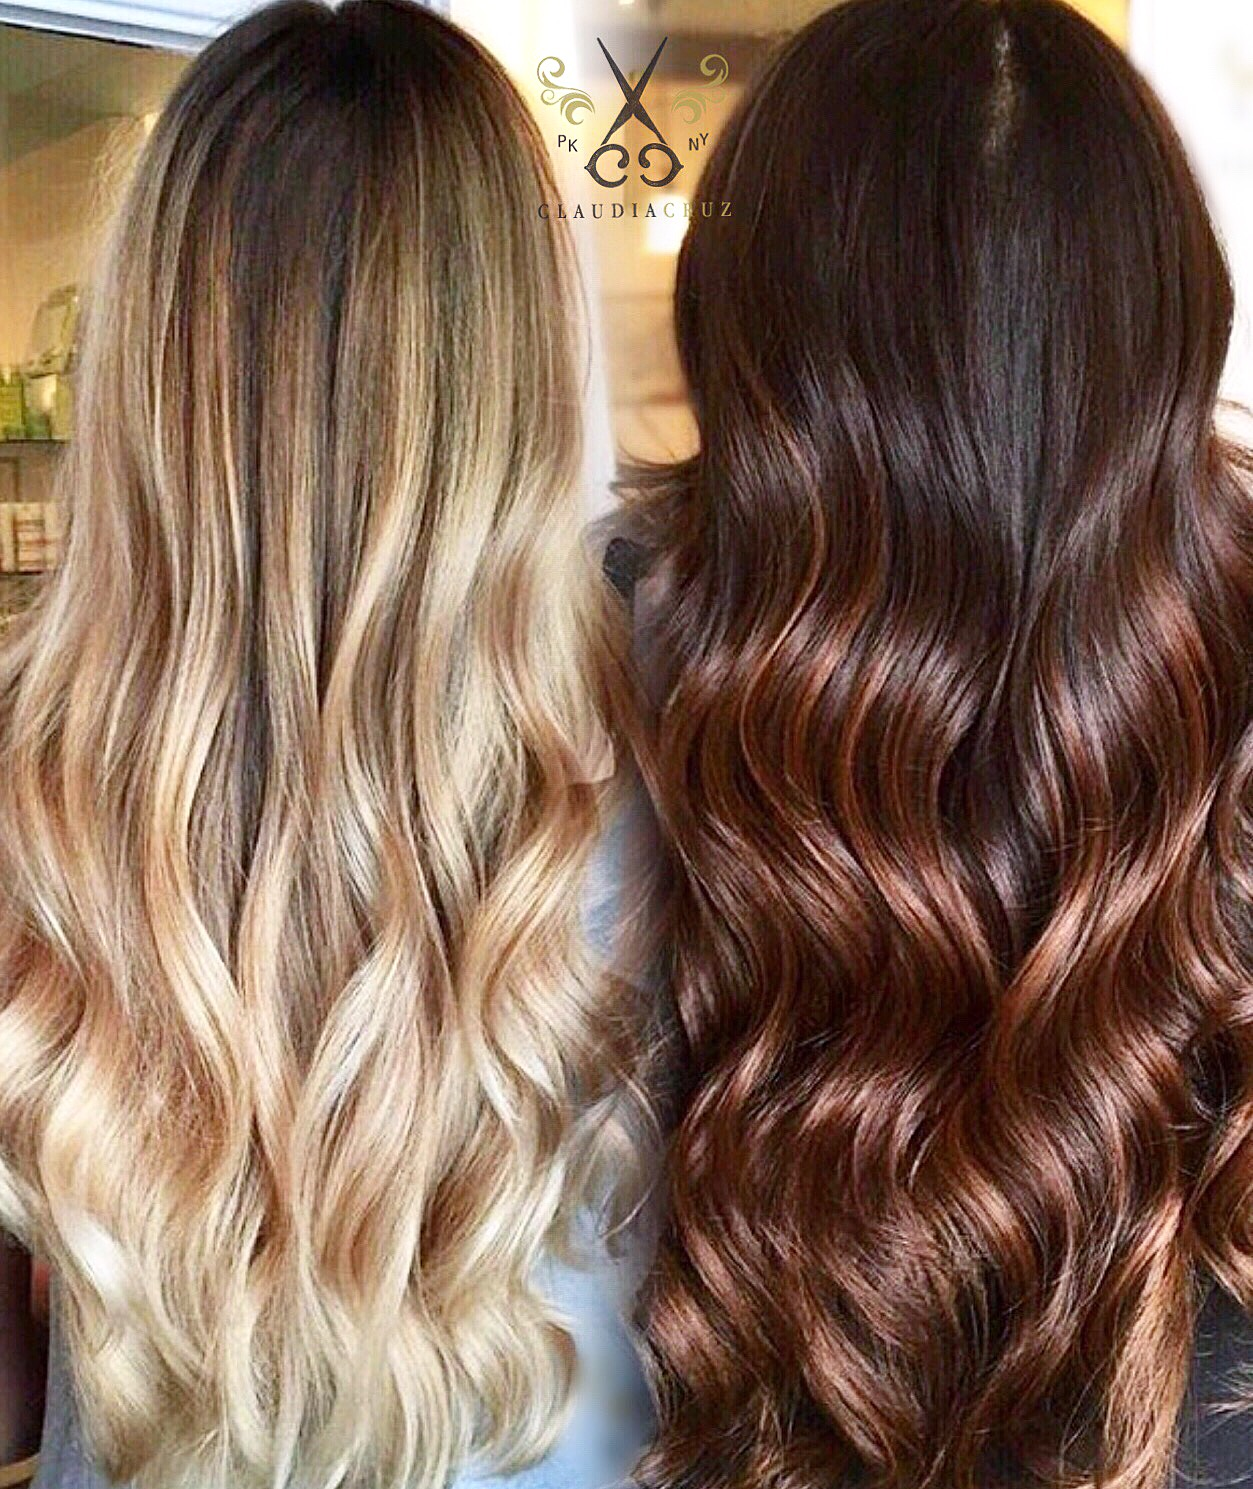 2 Balayage Looks Blonde And Caramel Sombre Career